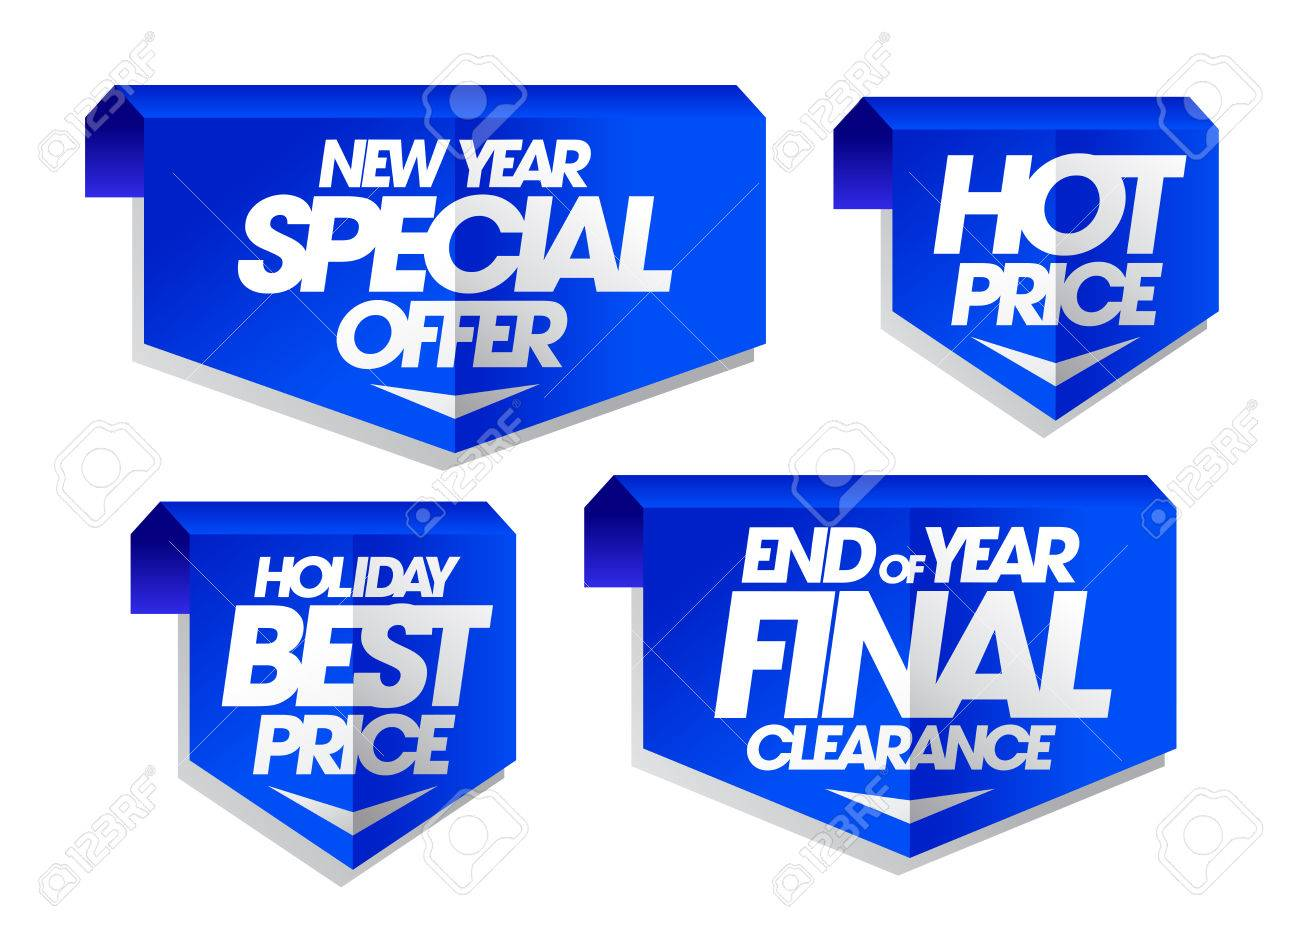 New Year Special Offer Holiday Best Price End Of Year Final Royalty Free Cliparts Vectors And Stock Illustration Image 64735140